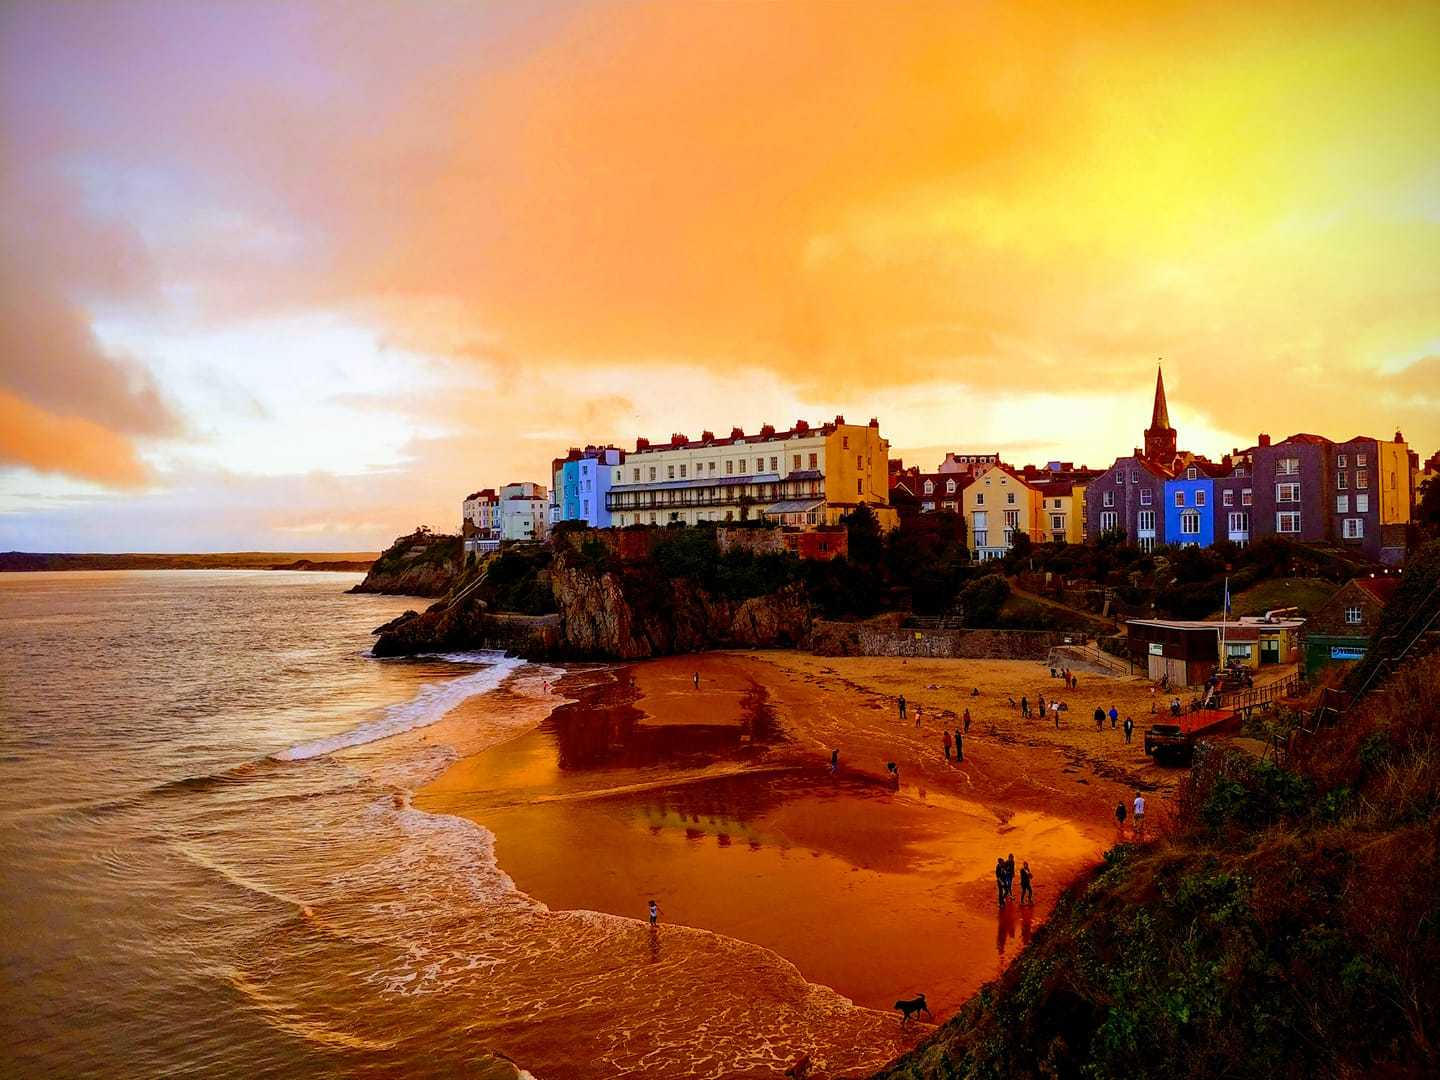 Dramatic picture of Tenby taken by Camera Club member Mark Dimbleby